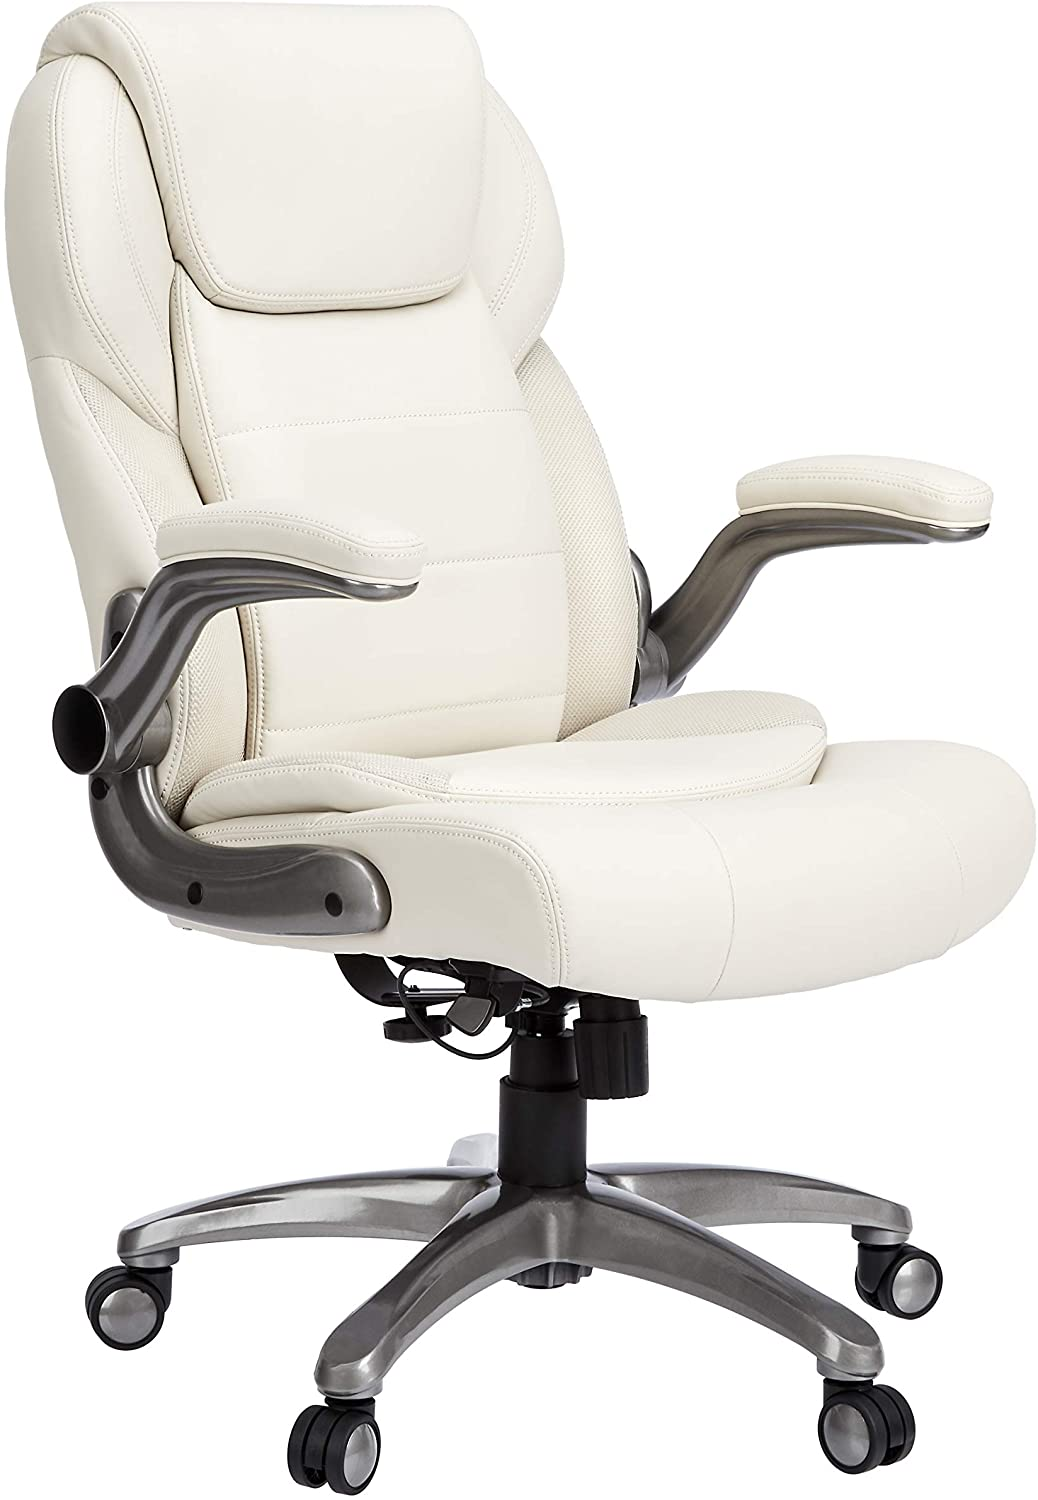 AmazonCommercial Ergonomic High-Back Leather Executive Chair with Flip-Up Arms and Lumbar Support, Cream